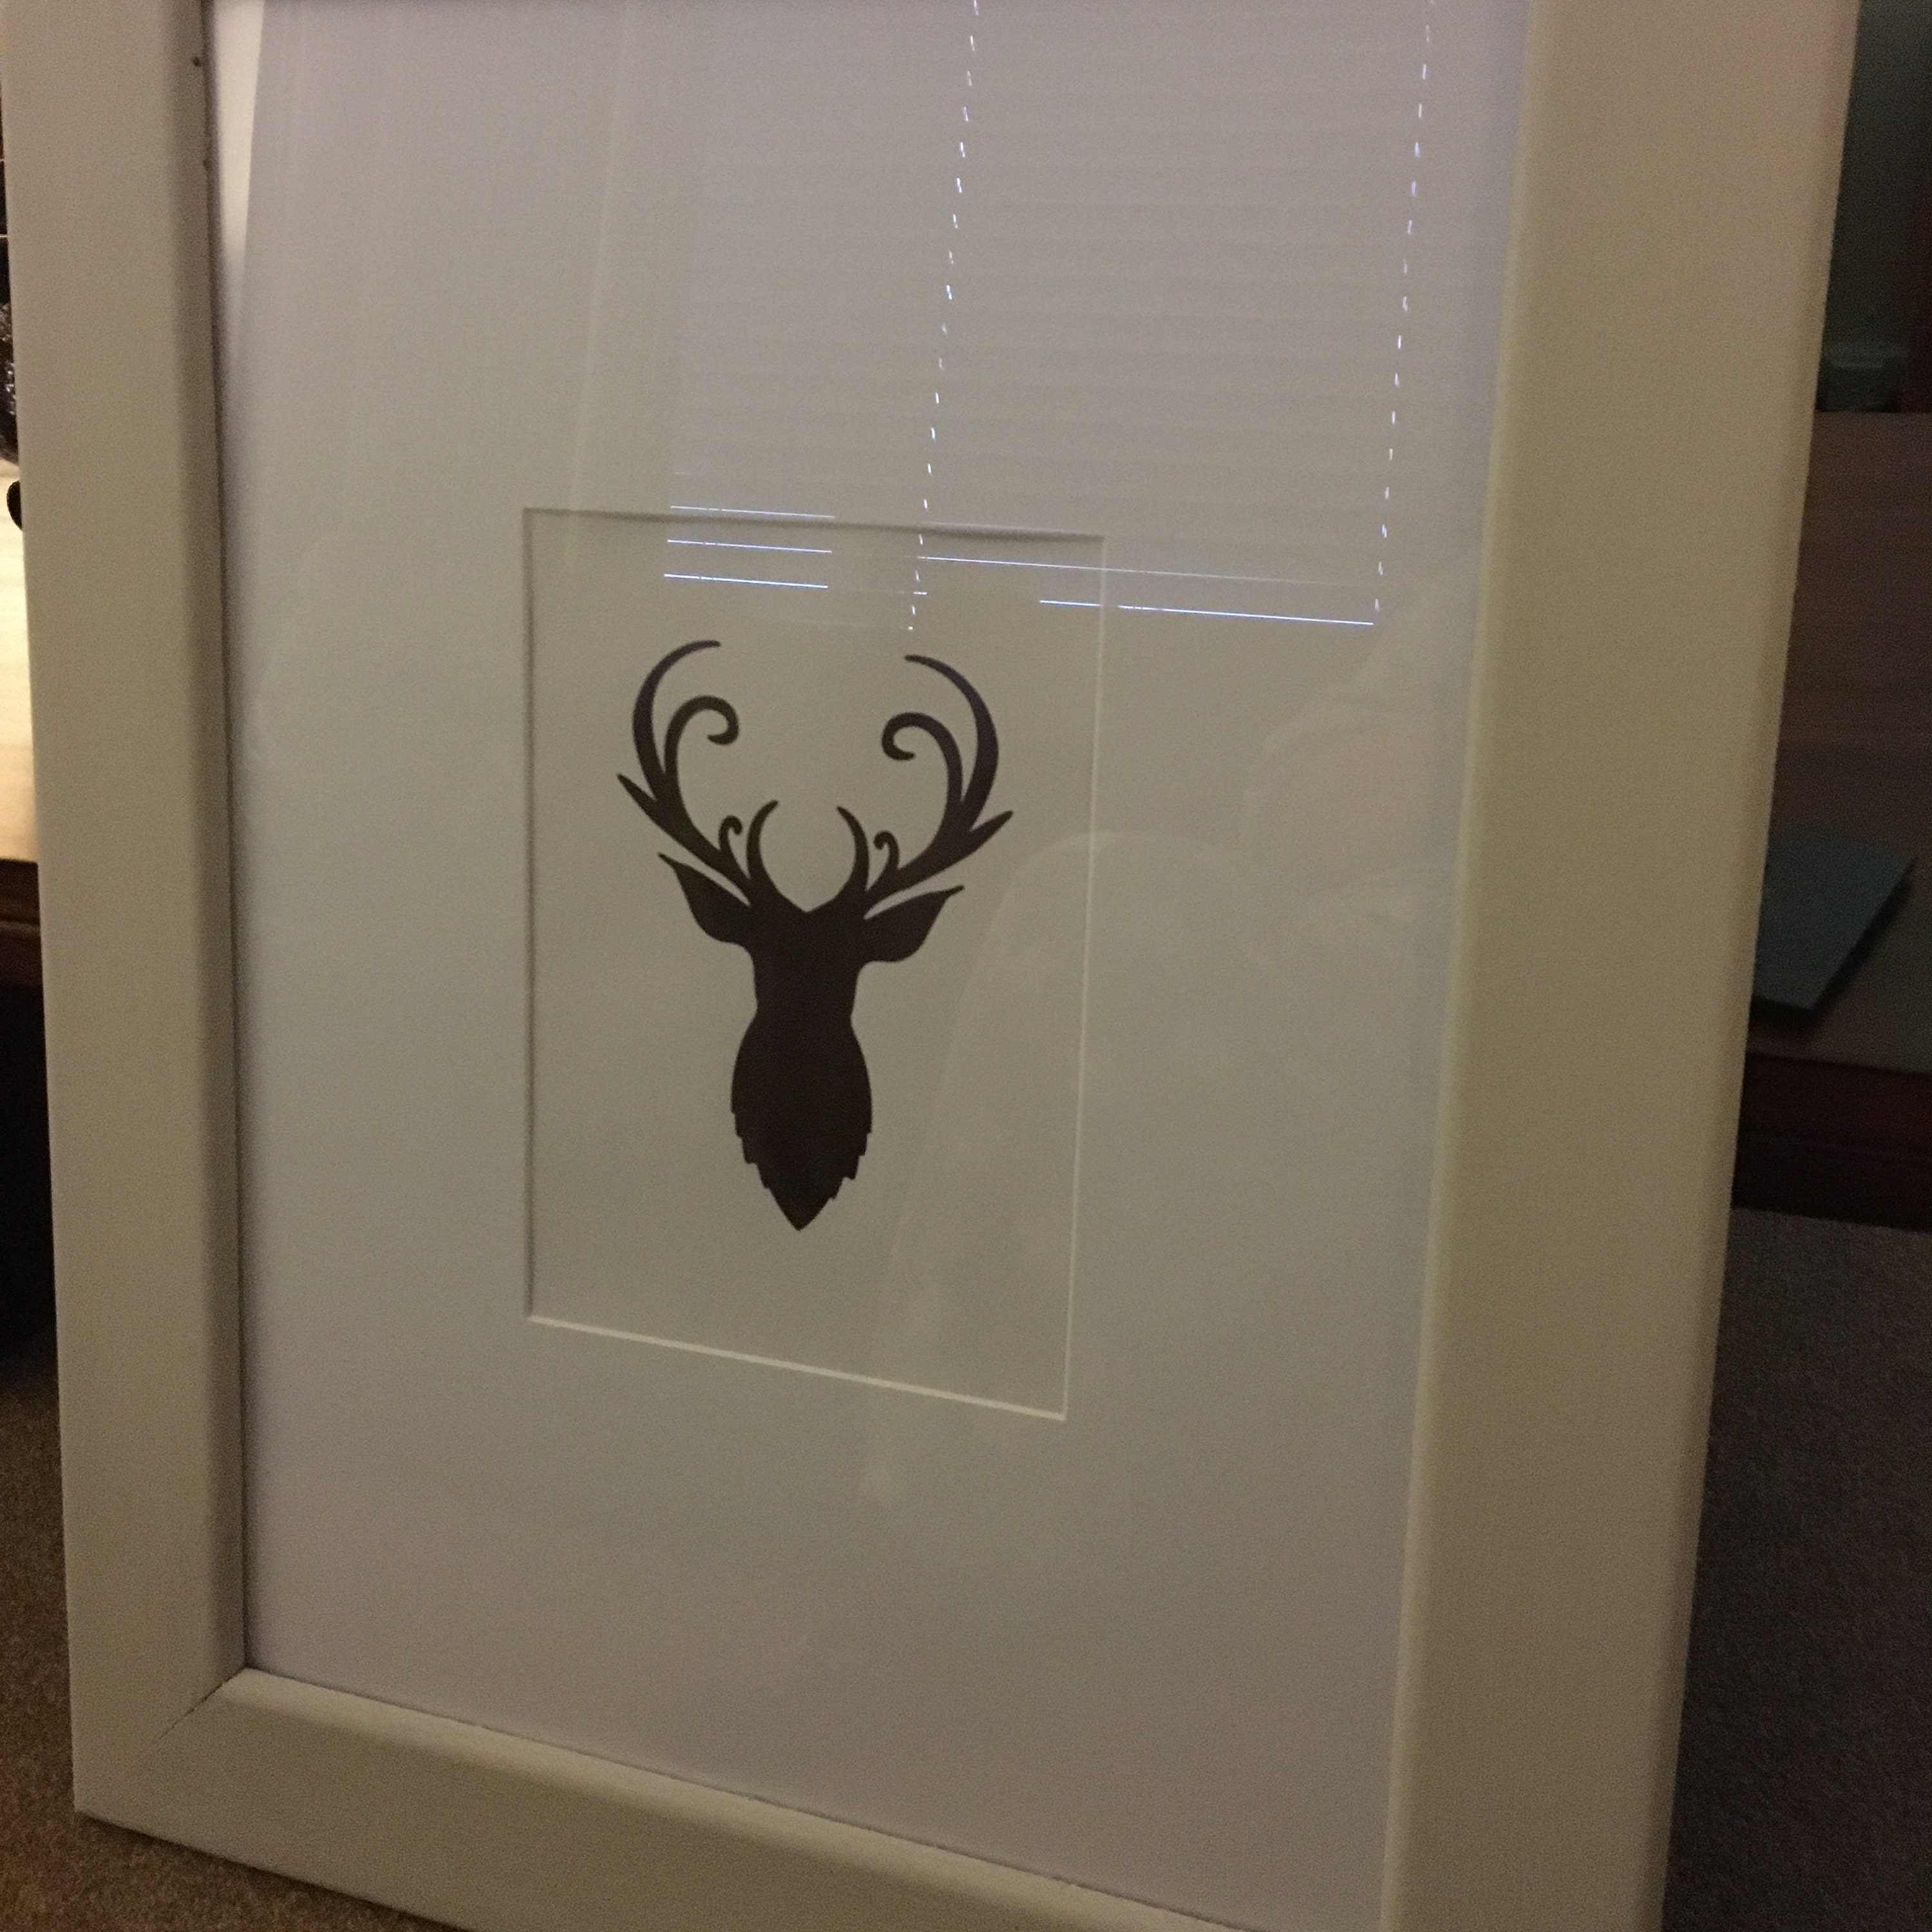 Caroline Stag added a photo of their purchase